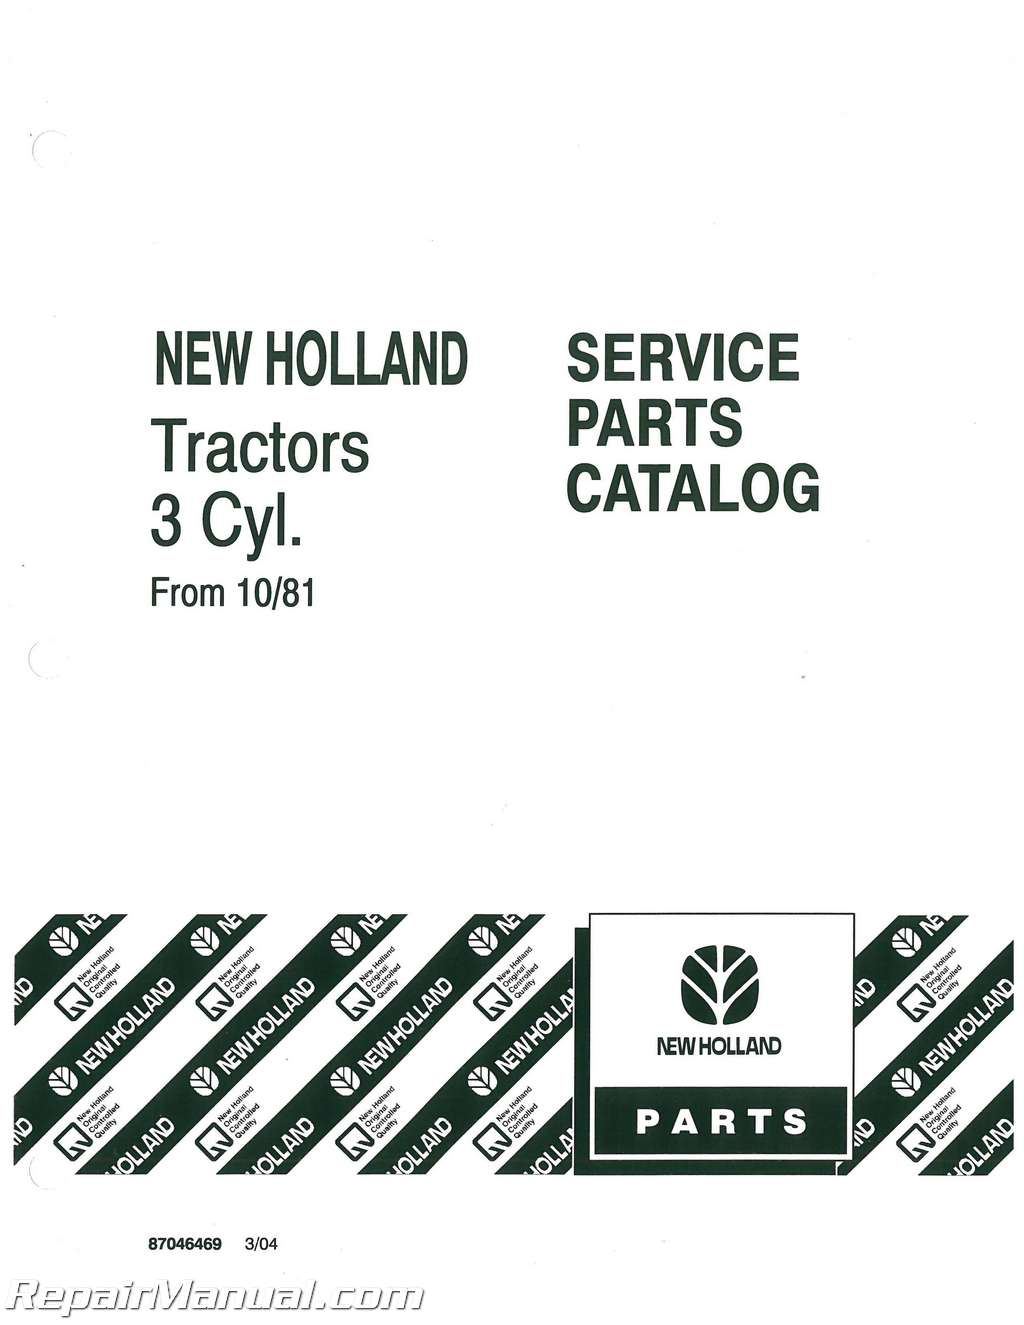 Aba693 2310 Ford Tractor Wiring Harness Diagram Wiring Resources